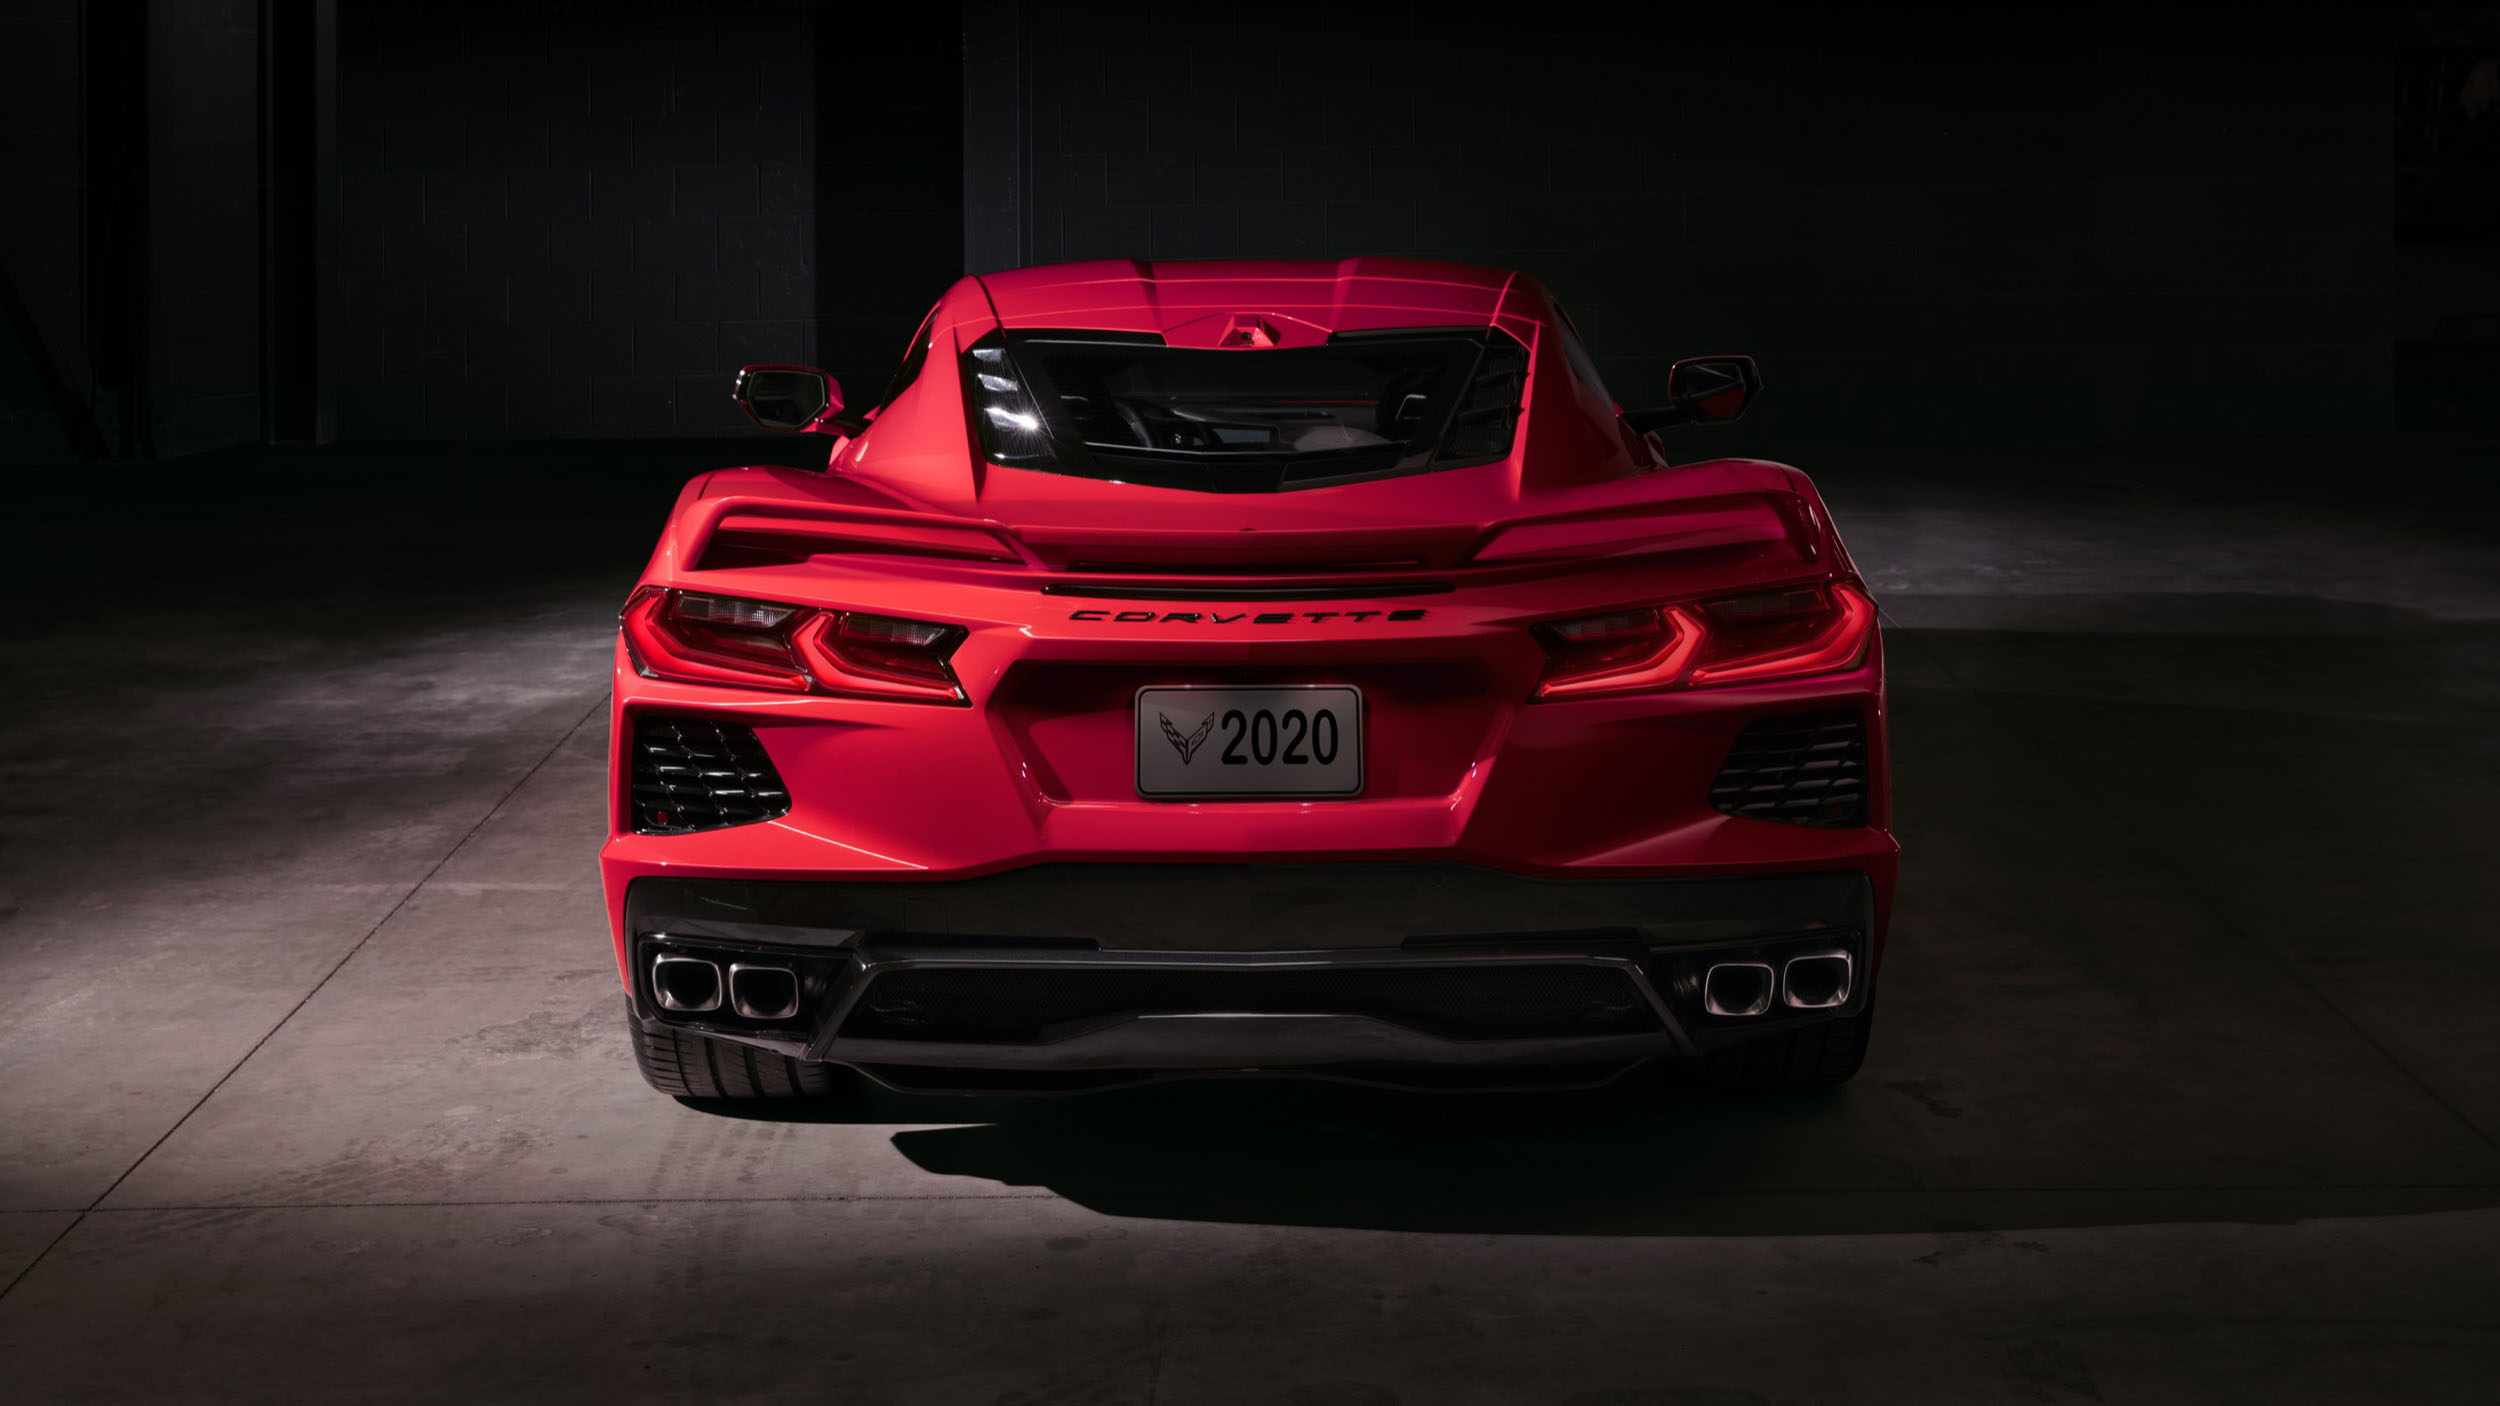 Motor 2020 Chevrolet Corvette US pricing and specification revealed